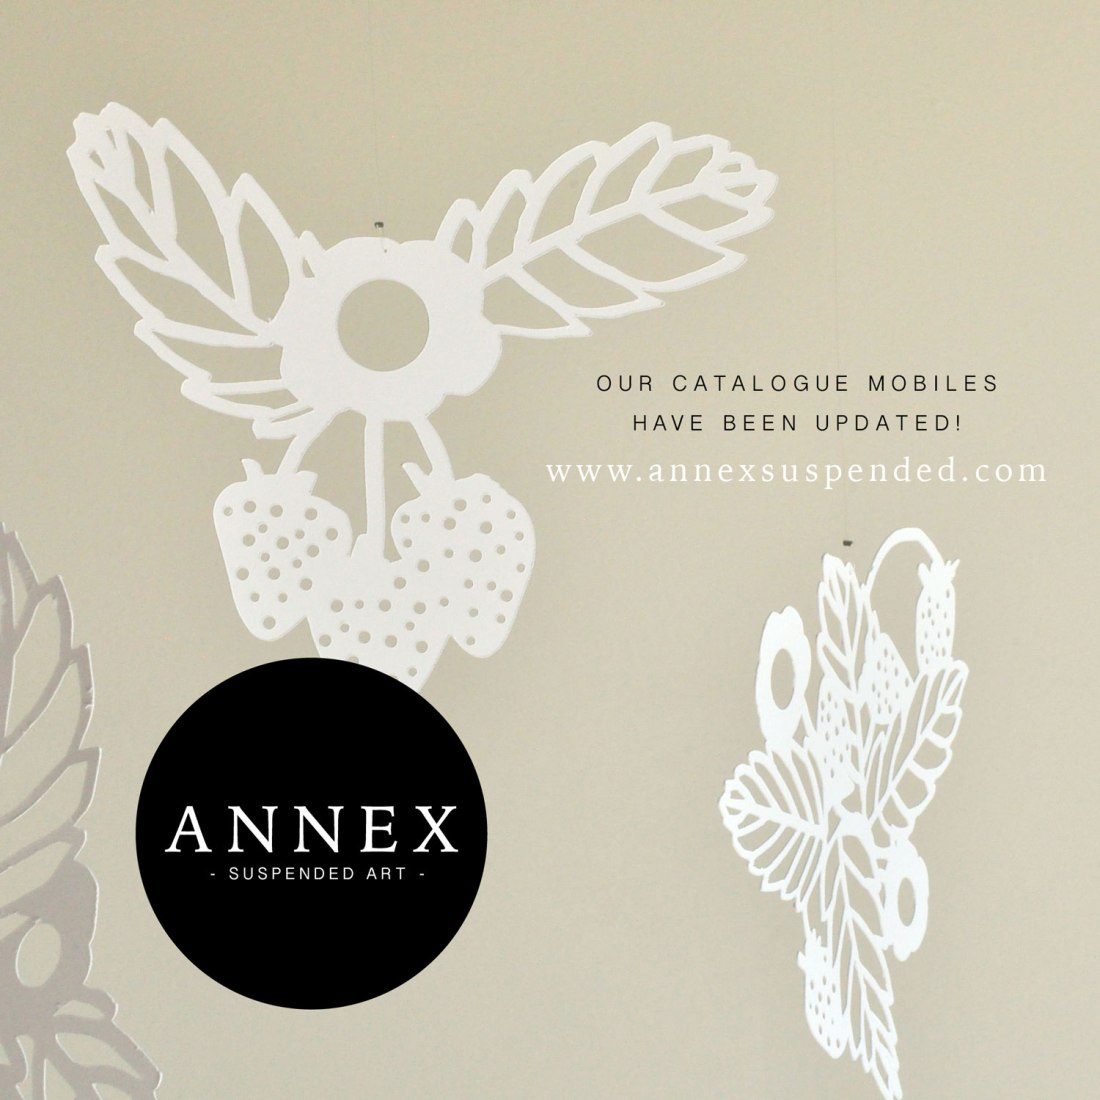 Annex Suspended Catalogue Mobiles - New Hanging Decor in Fernie BC Canada